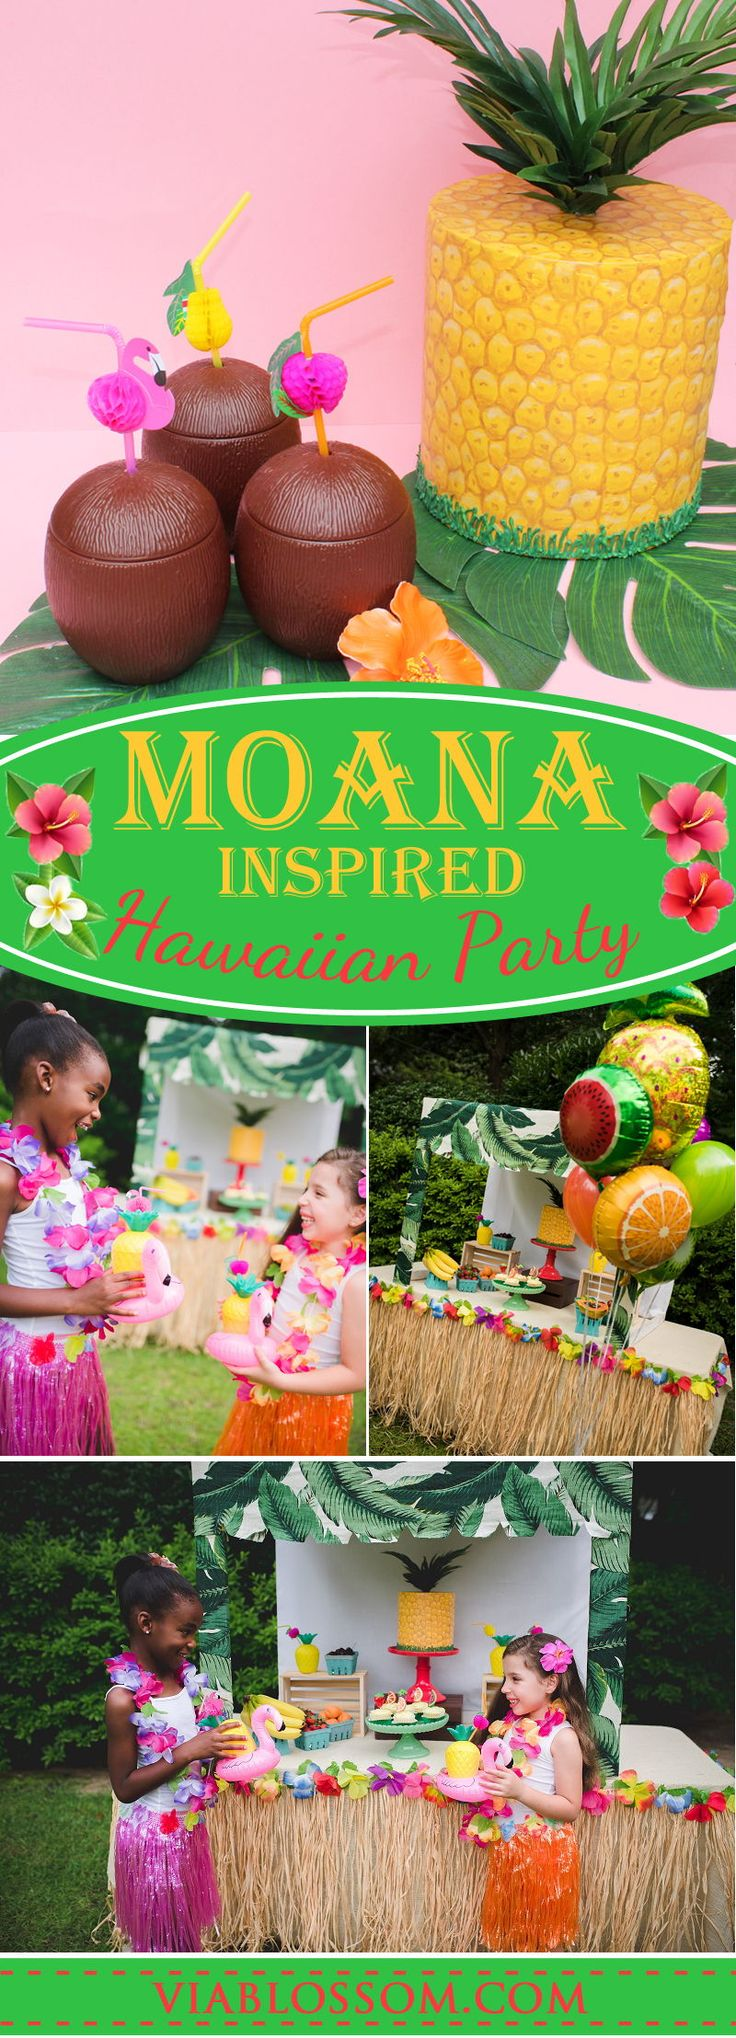 Fabulous Moana Party Ideas for a tropical birthday party!  All the Luau party decorations you will need for a wonderful summer party!